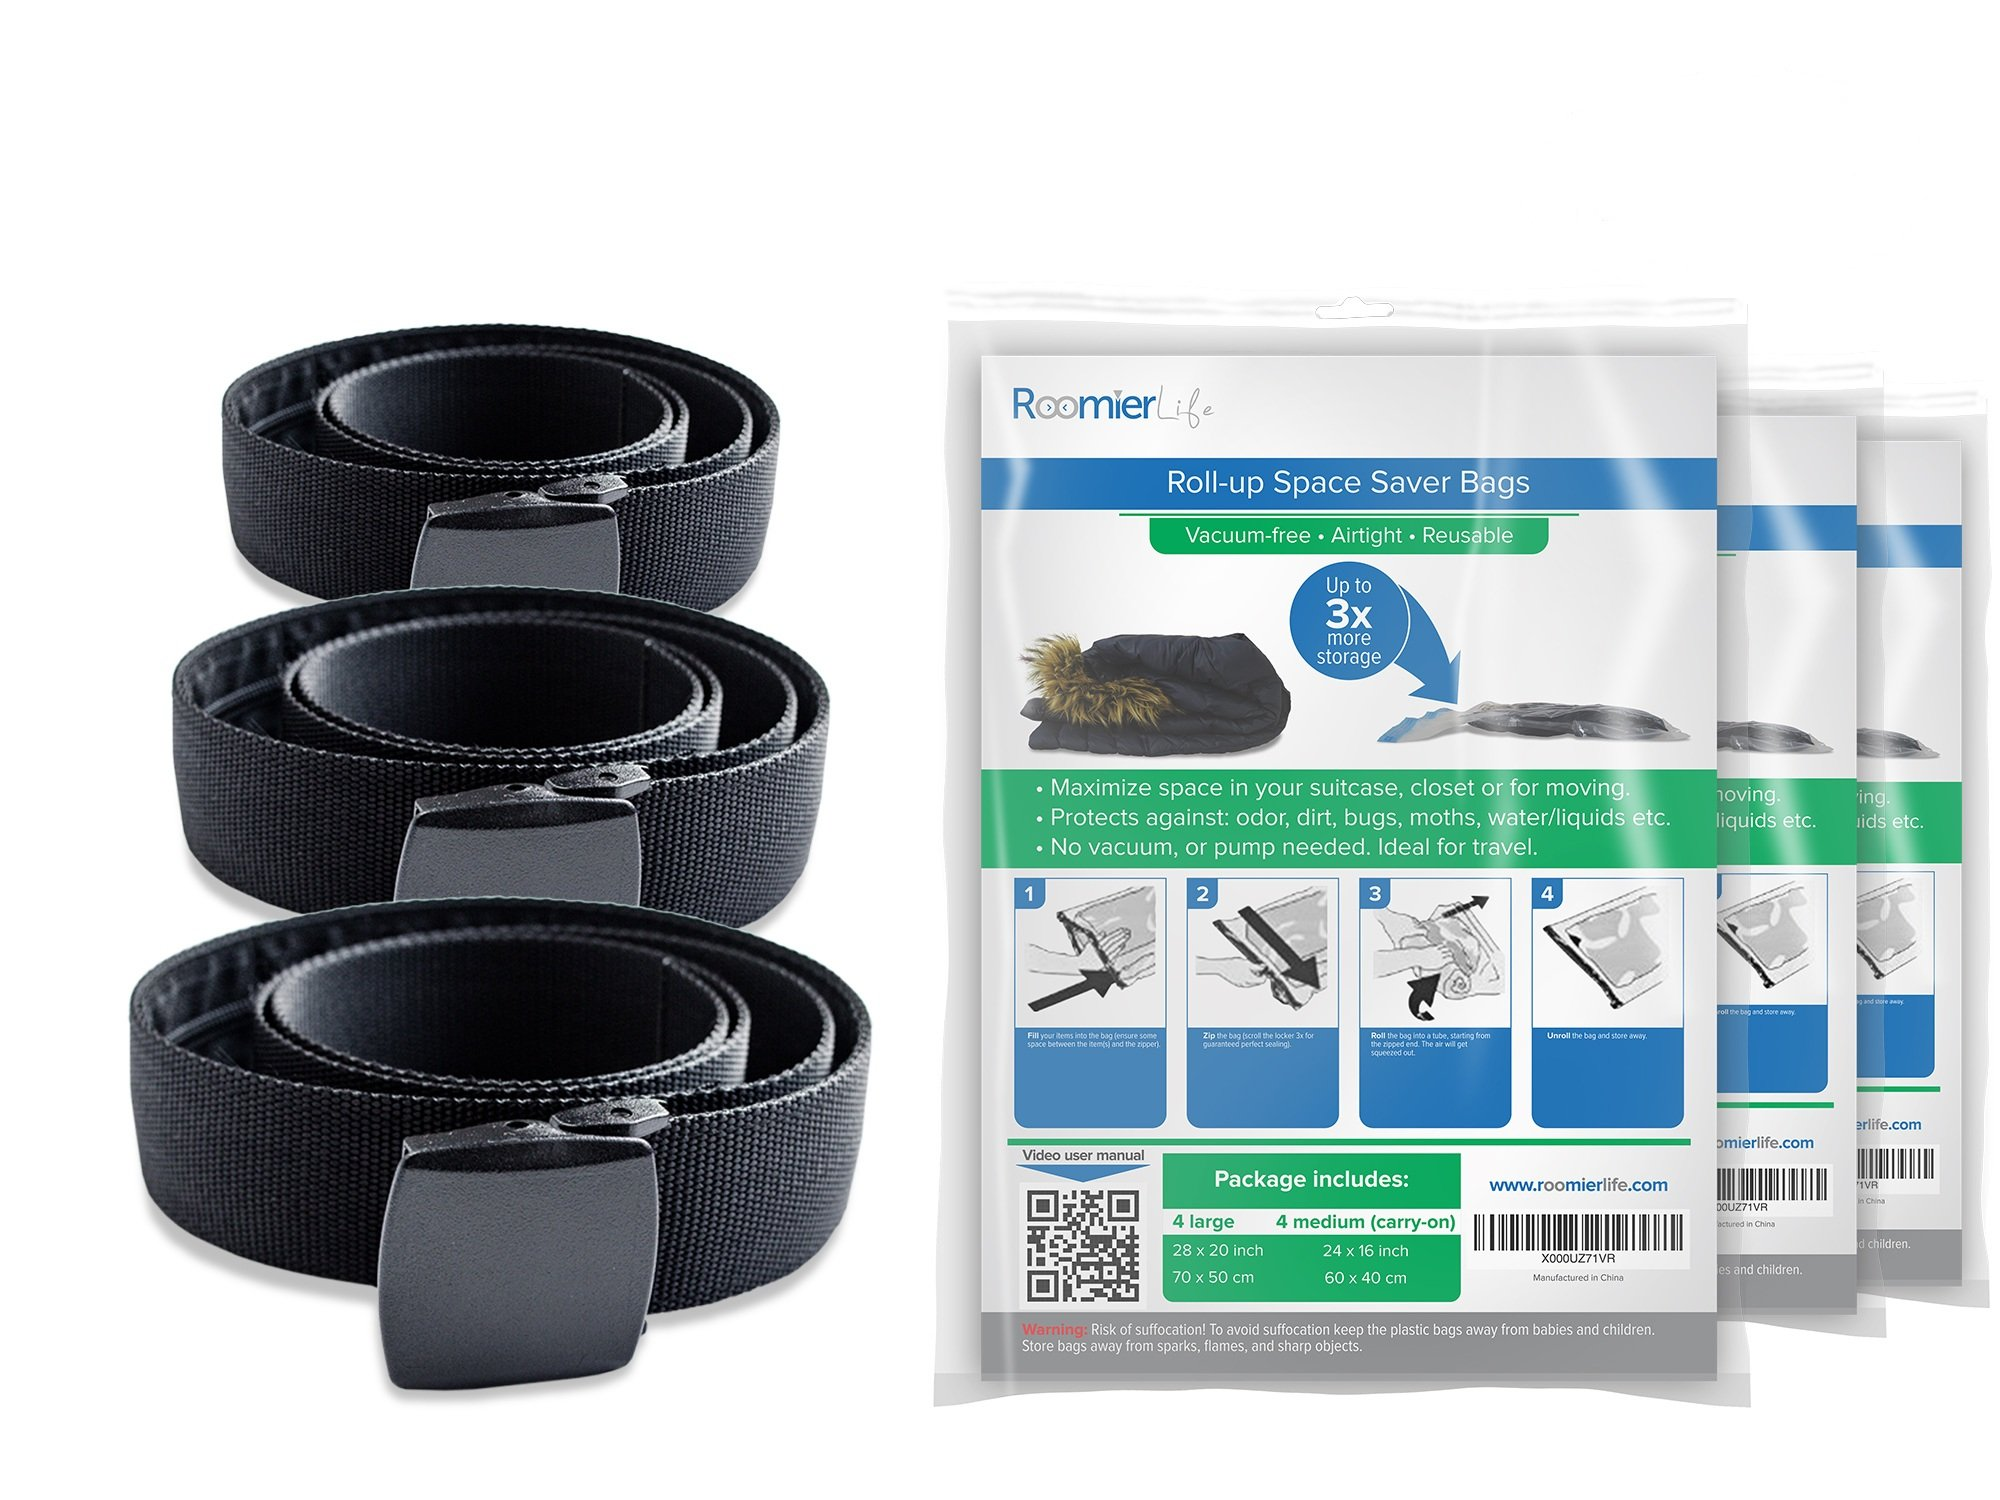 Travel Security Belt & Travel Space Saver Bags 3 Pack Bundle. Includes 3 belts & 3 packs of compression bags (24 bags total) by RoomierLife